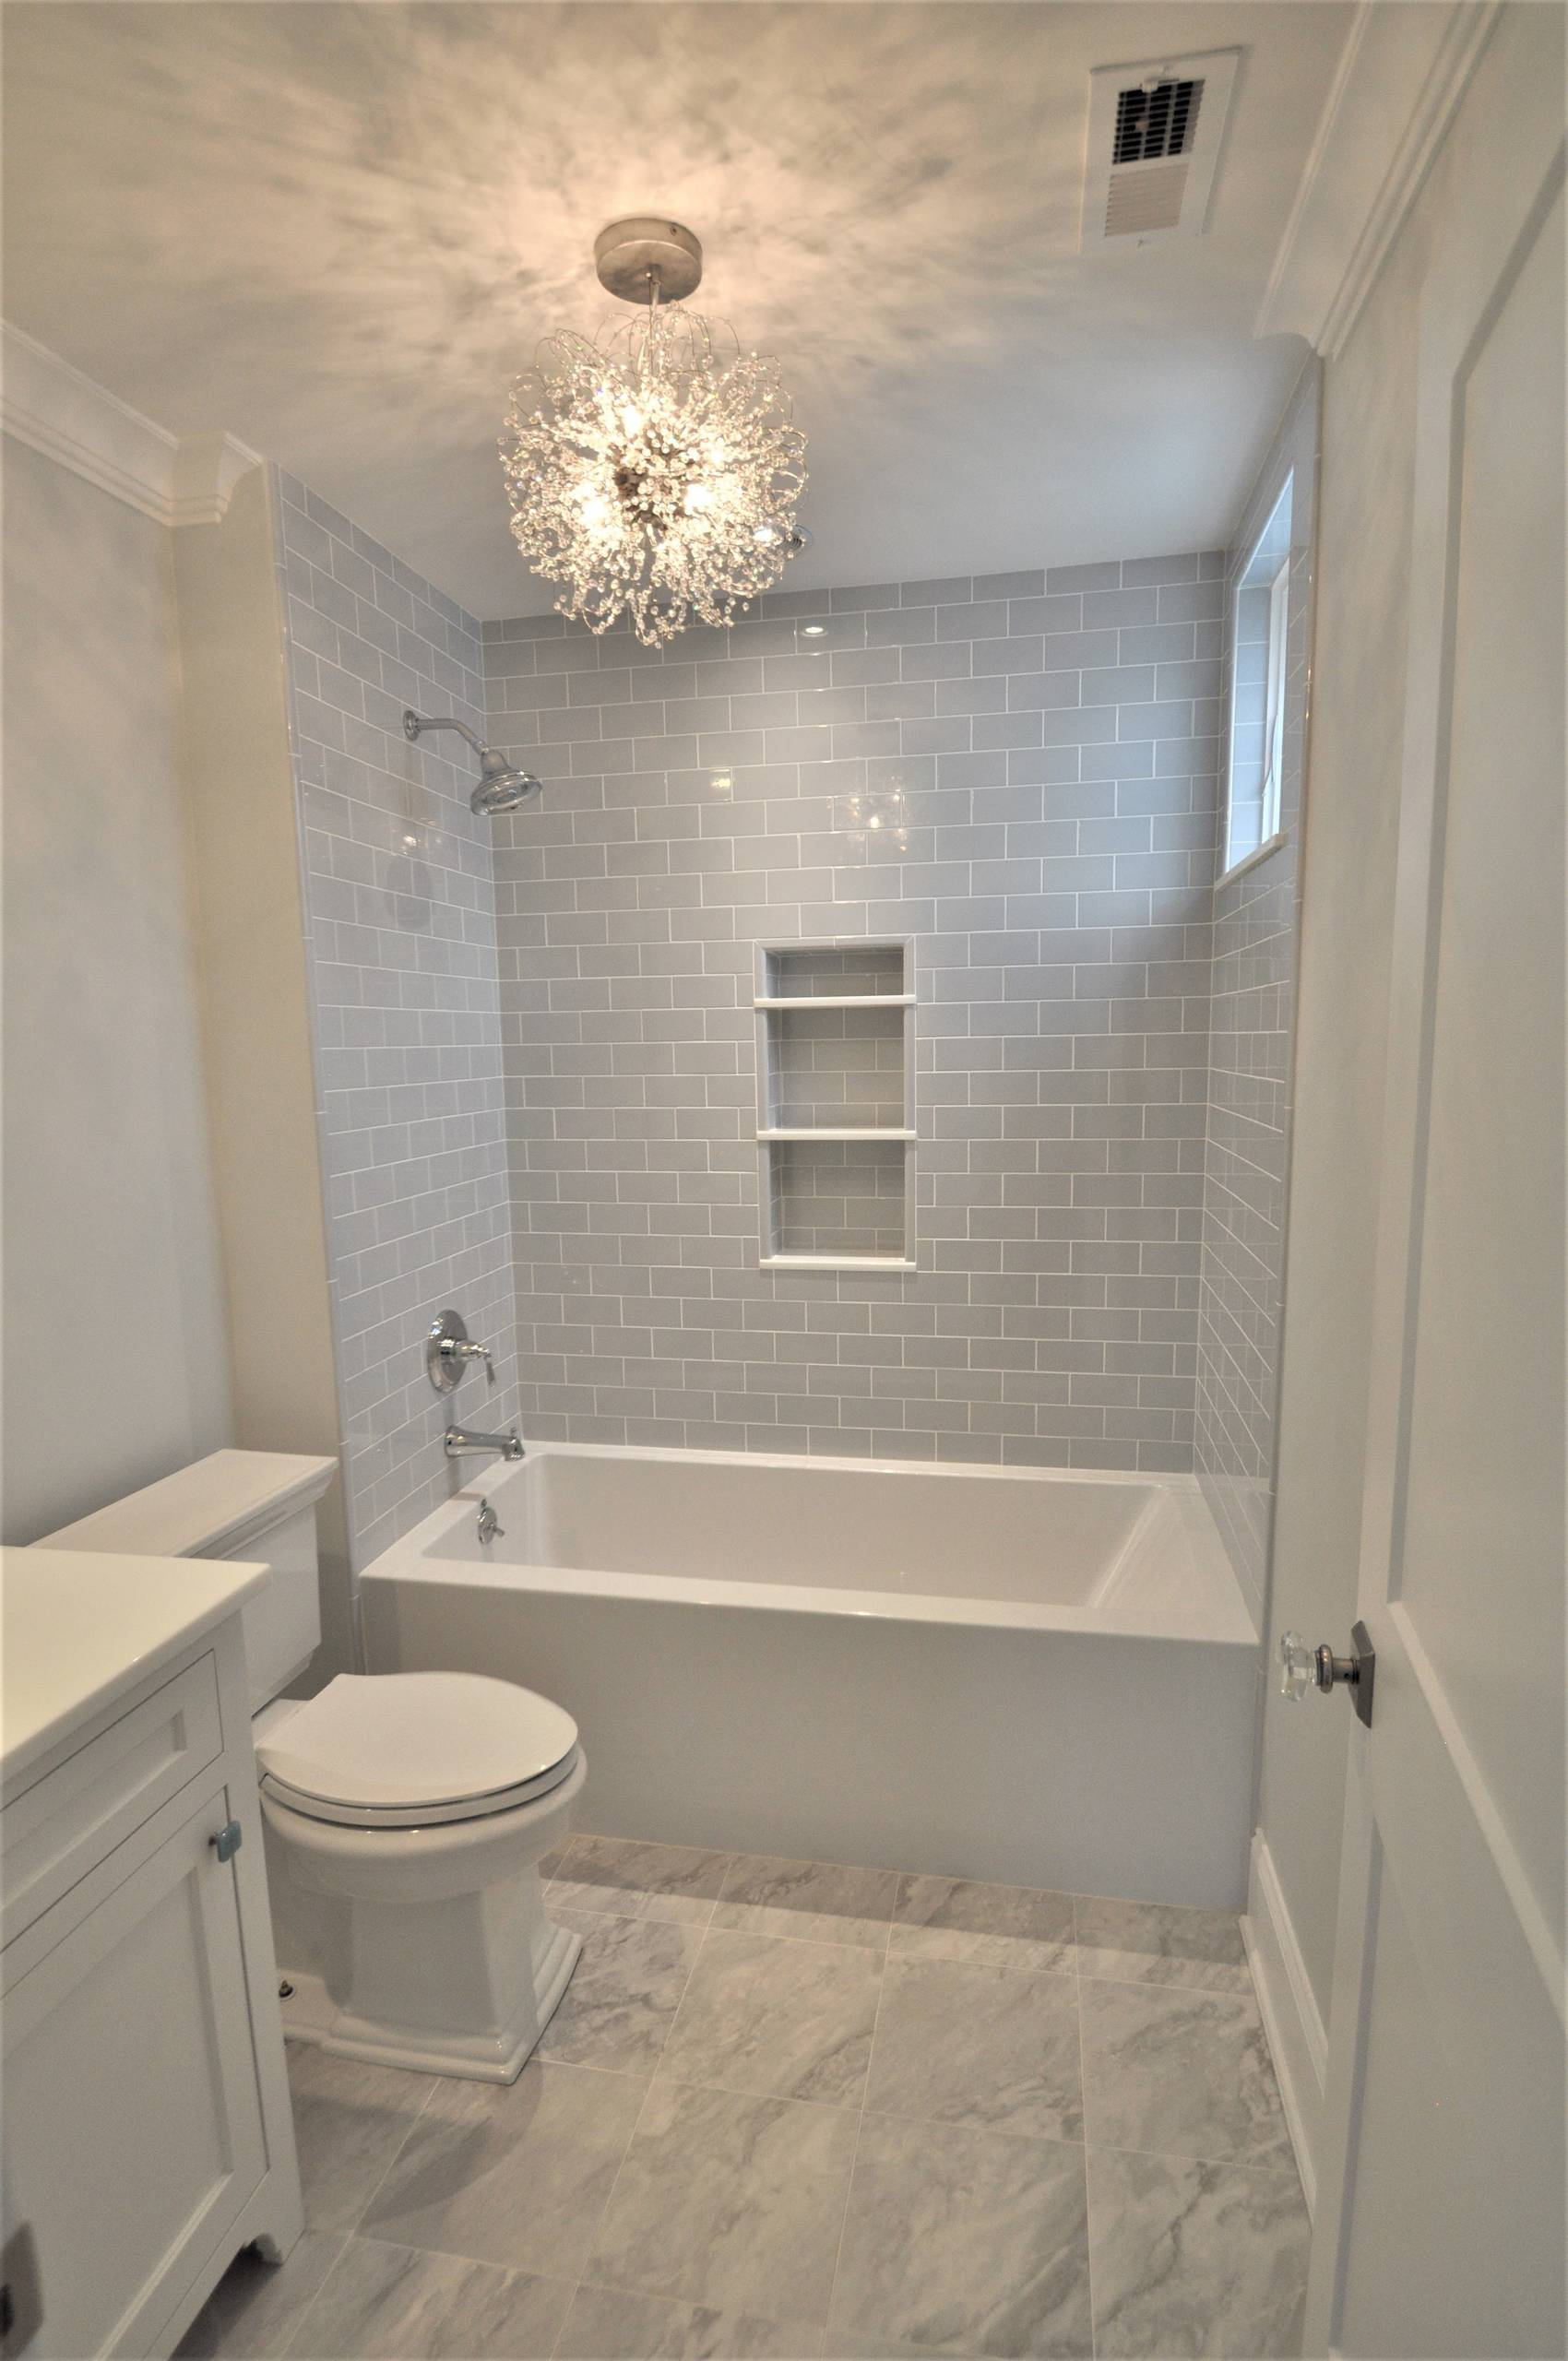 75 Beautiful Small Bathroom Pictures & Ideas - January, 2021 | Houzz